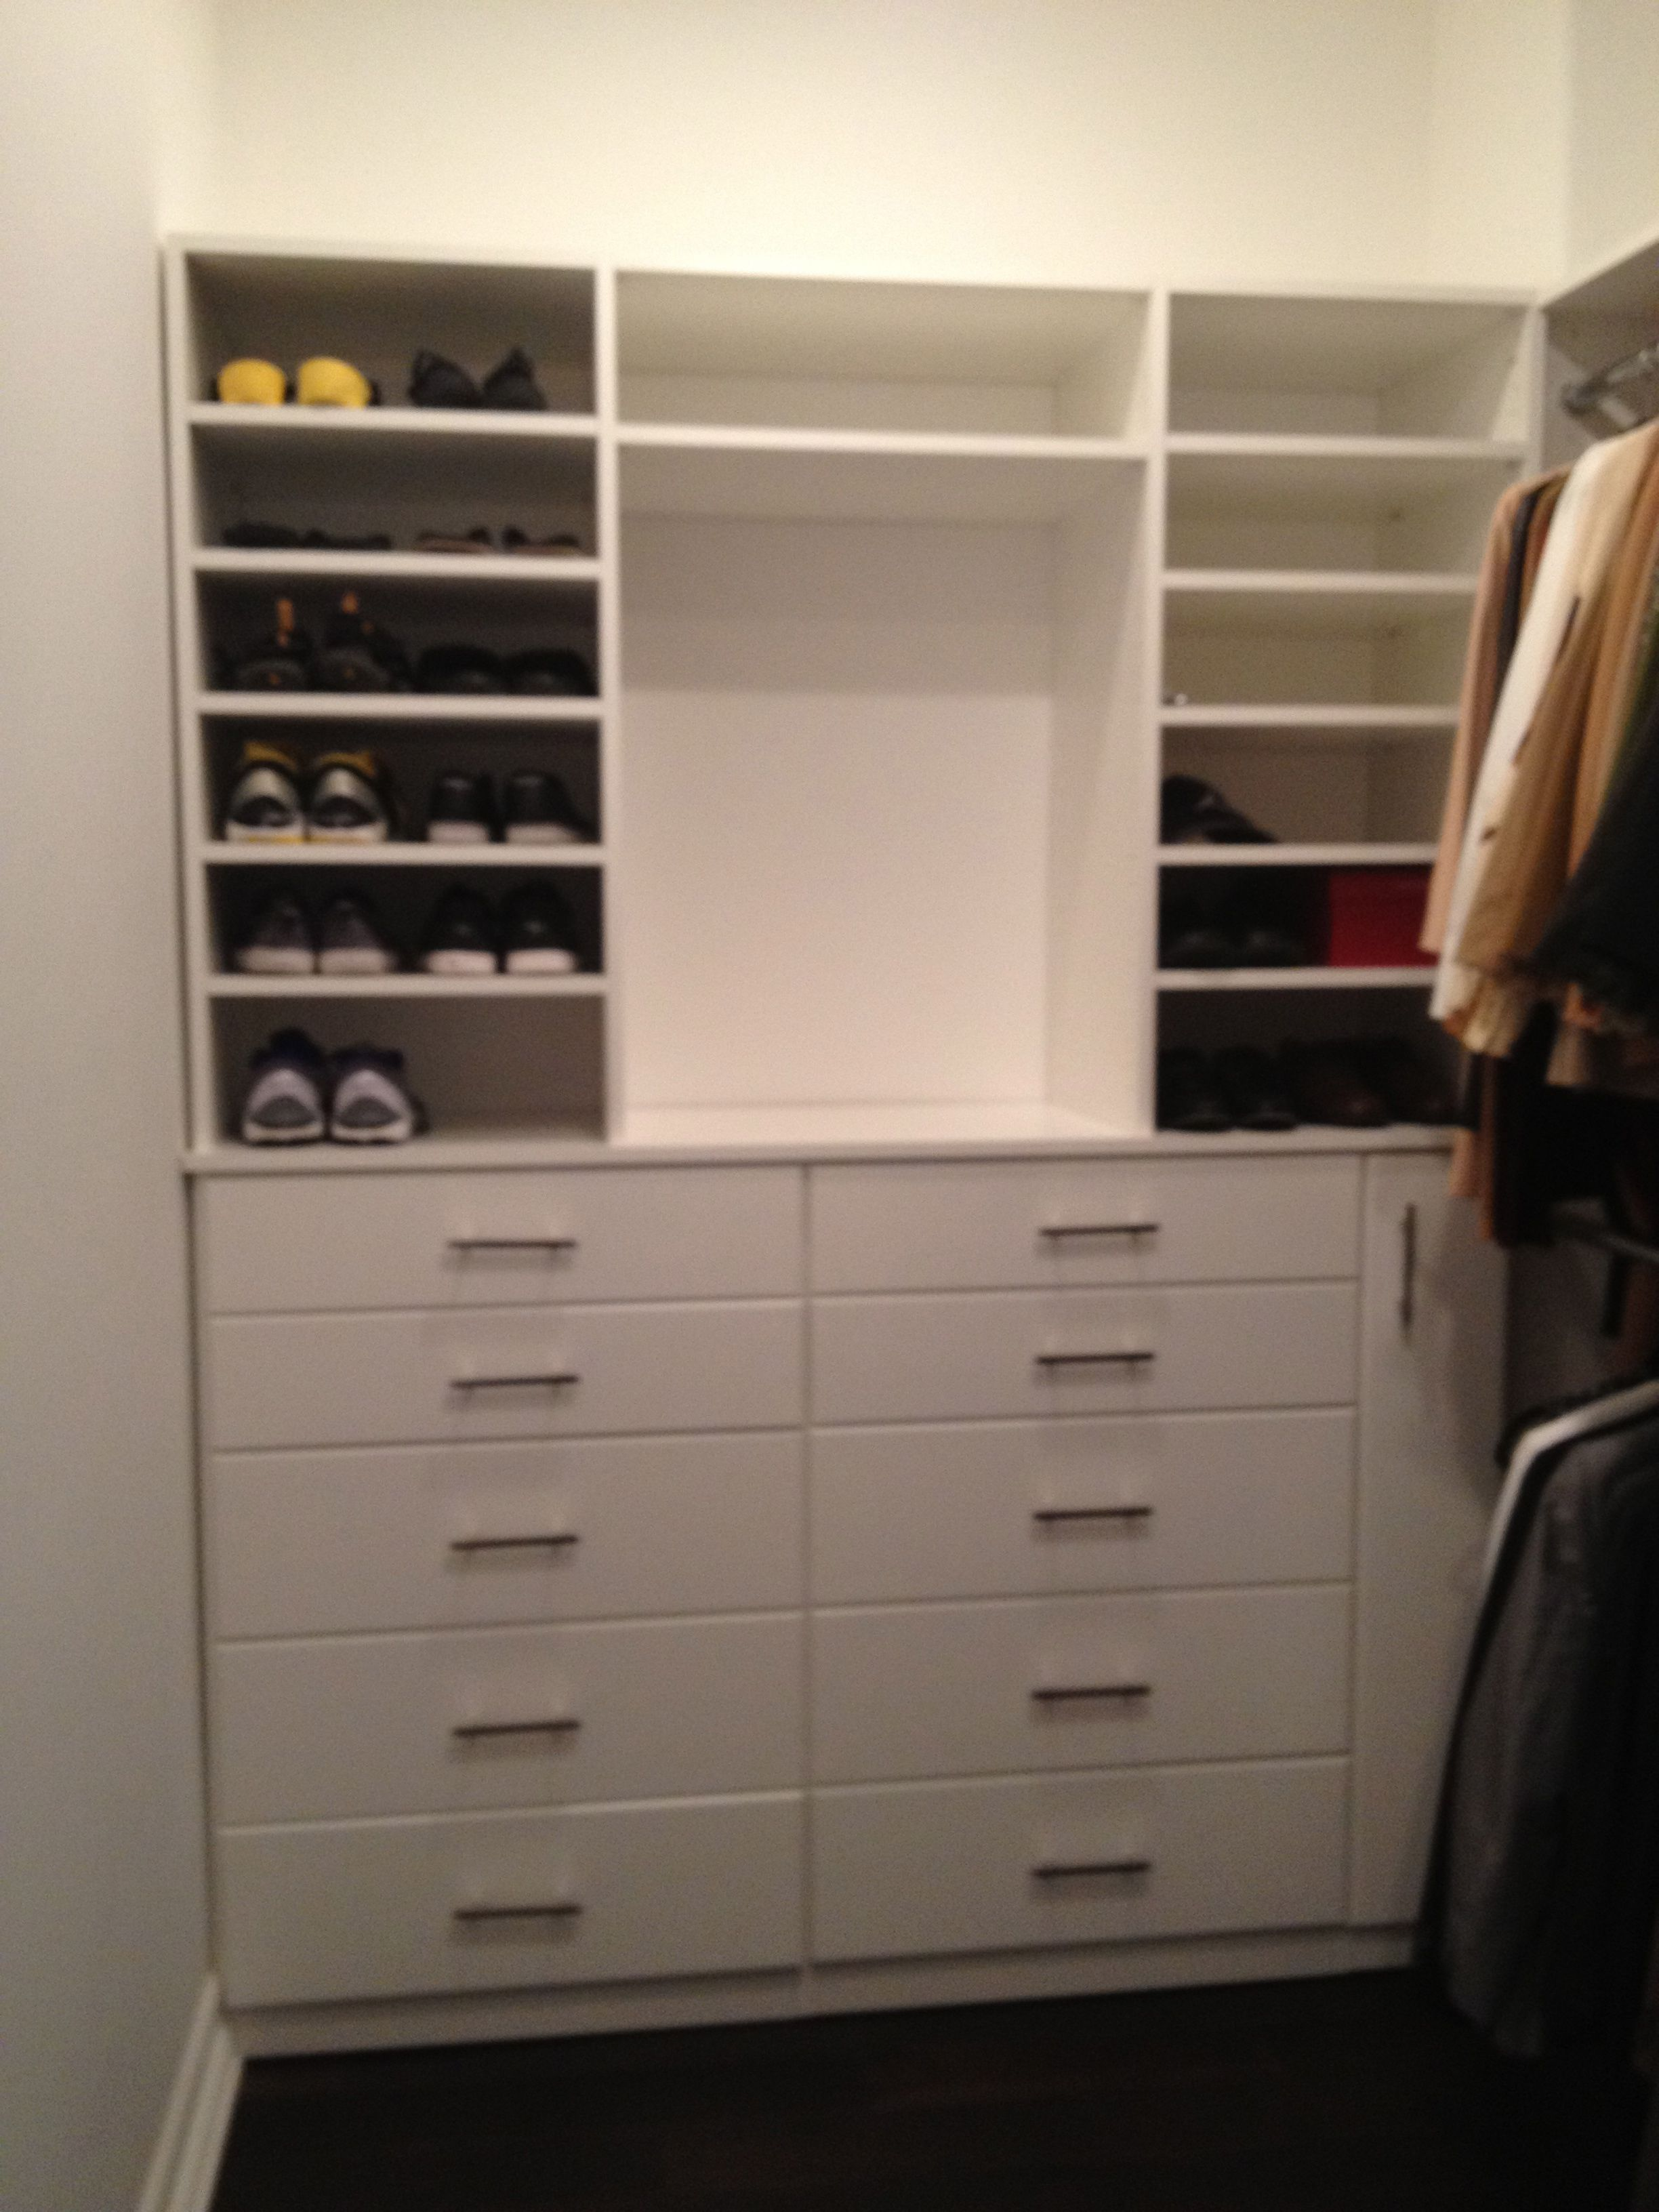 pinterest sports dresser in room wardrobe walk corner closet rooms walking pin easy locker bed by dorm on design mikijhm cloakroom dressing closets